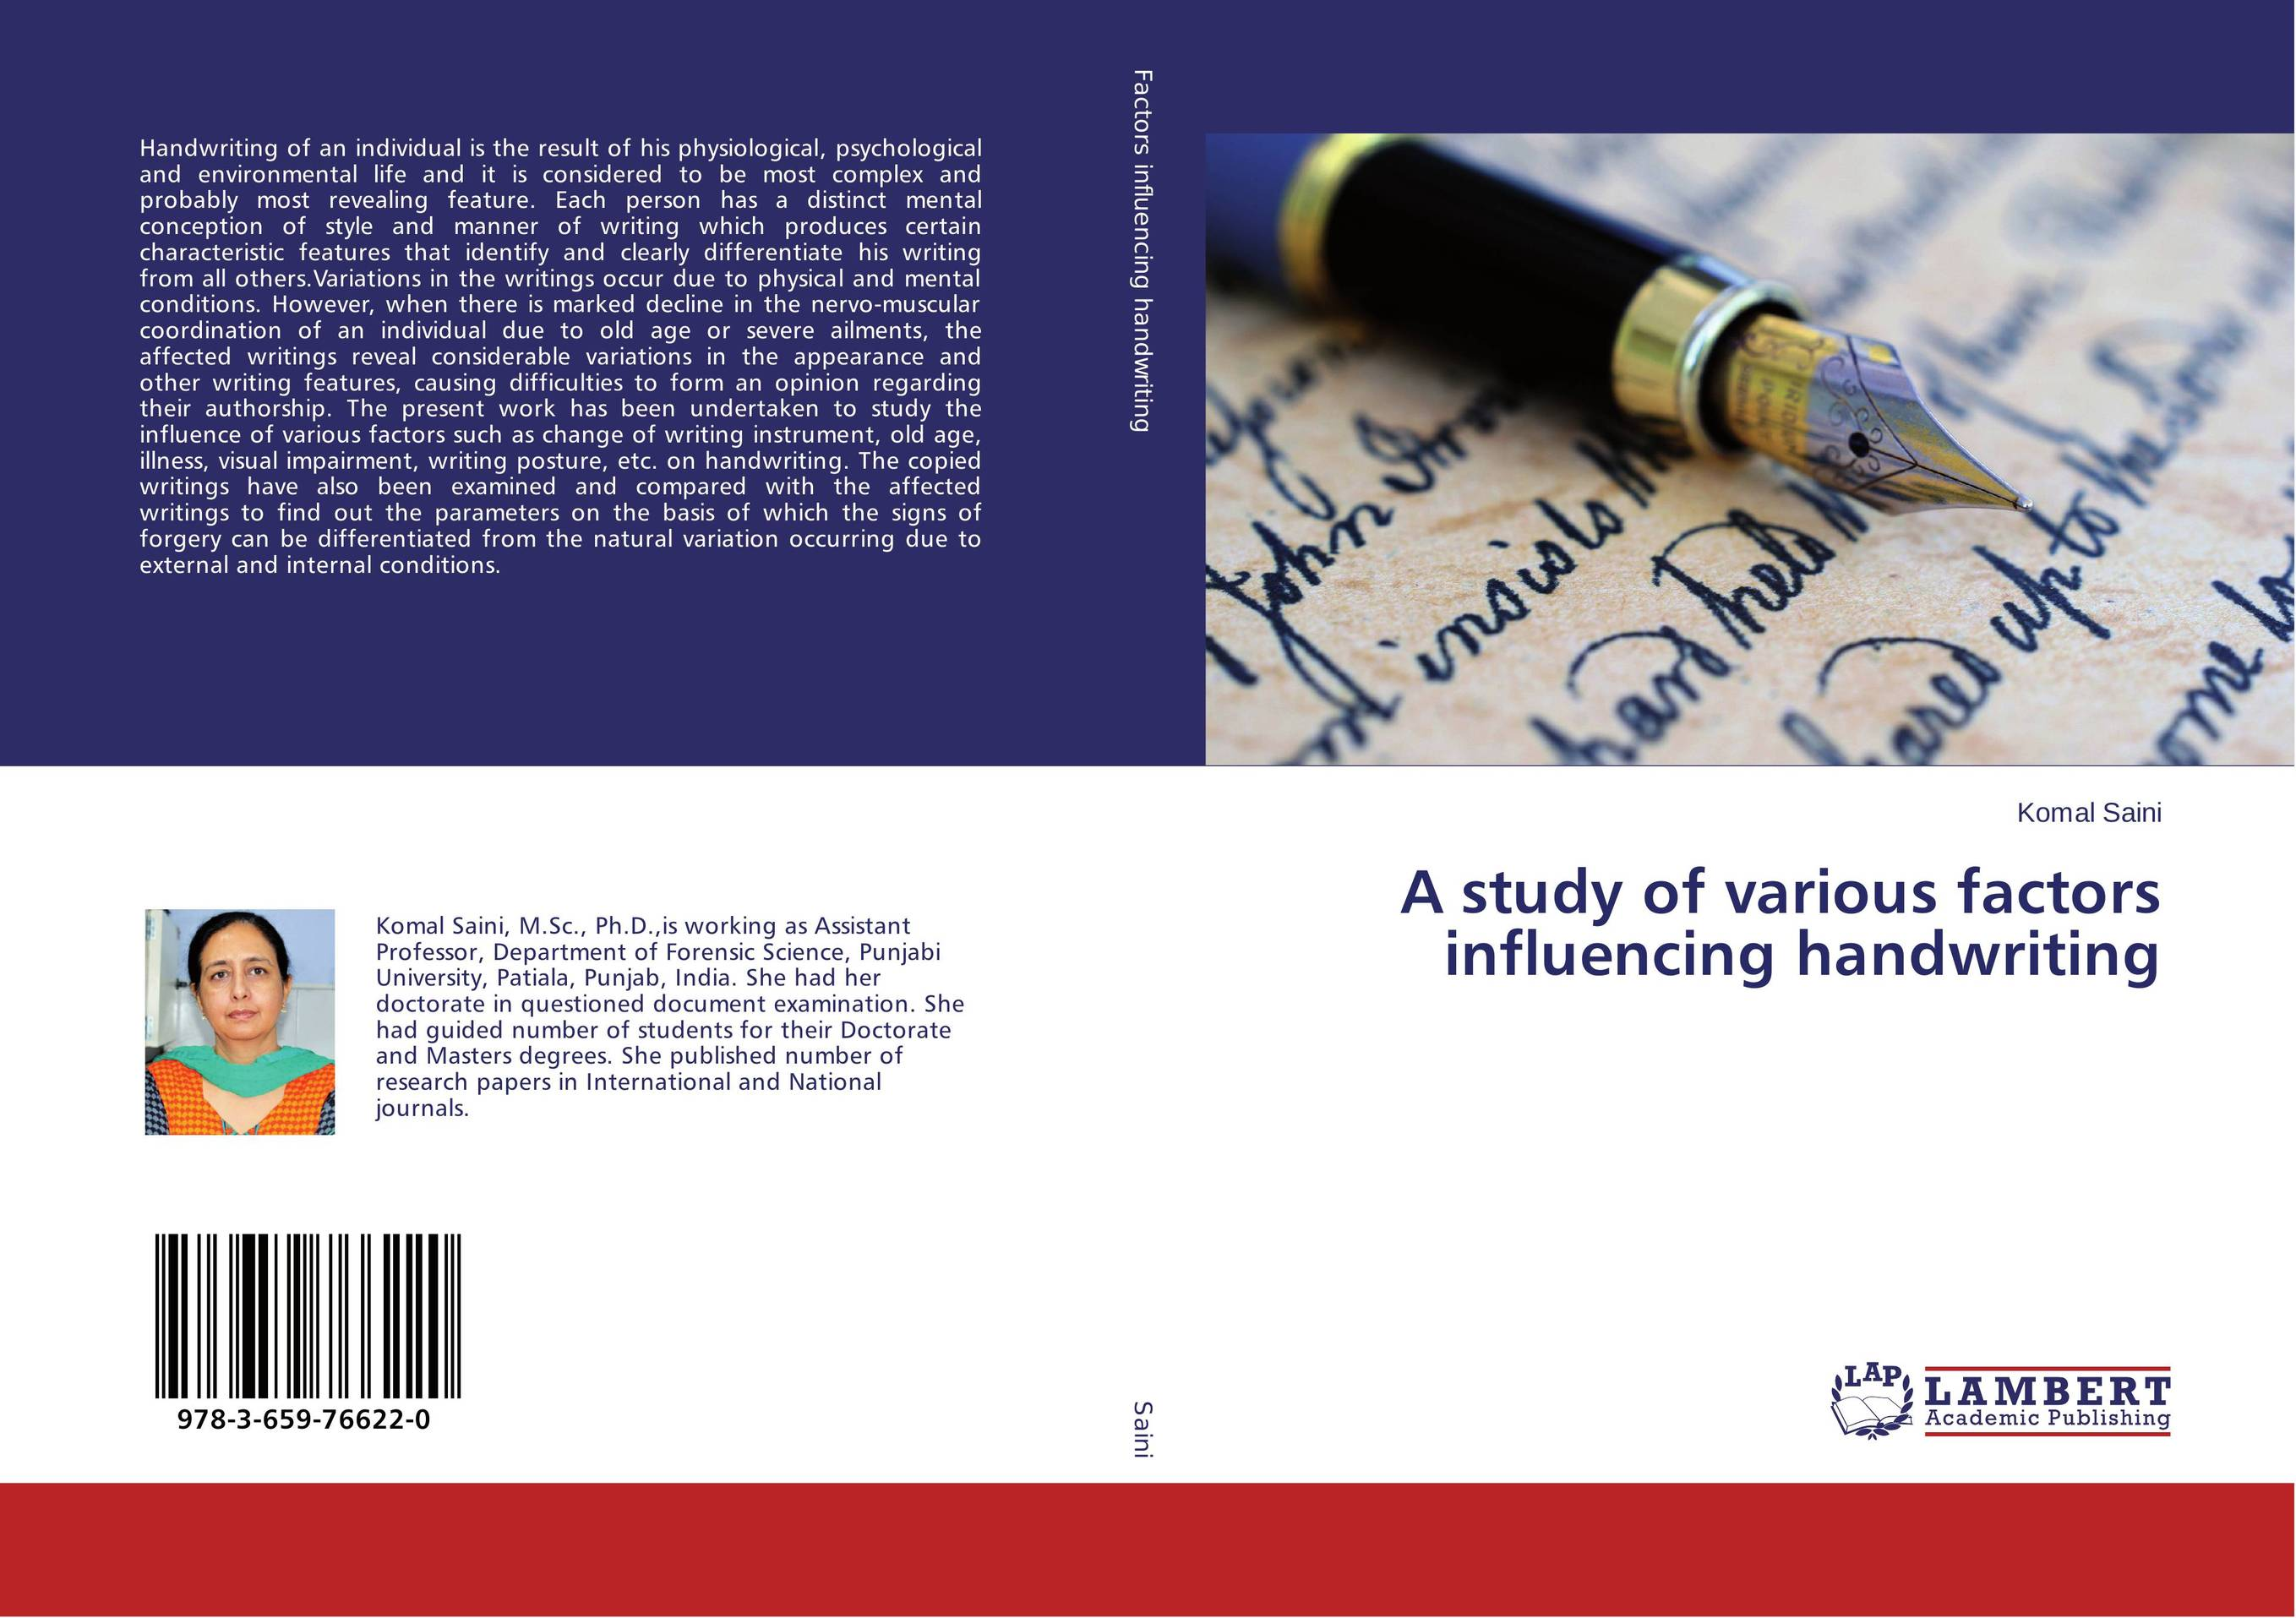 A study of various factors influencing handwriting belousov a security features of banknotes and other documents methods of authentication manual денежные билеты бланки ценных бумаг и документов